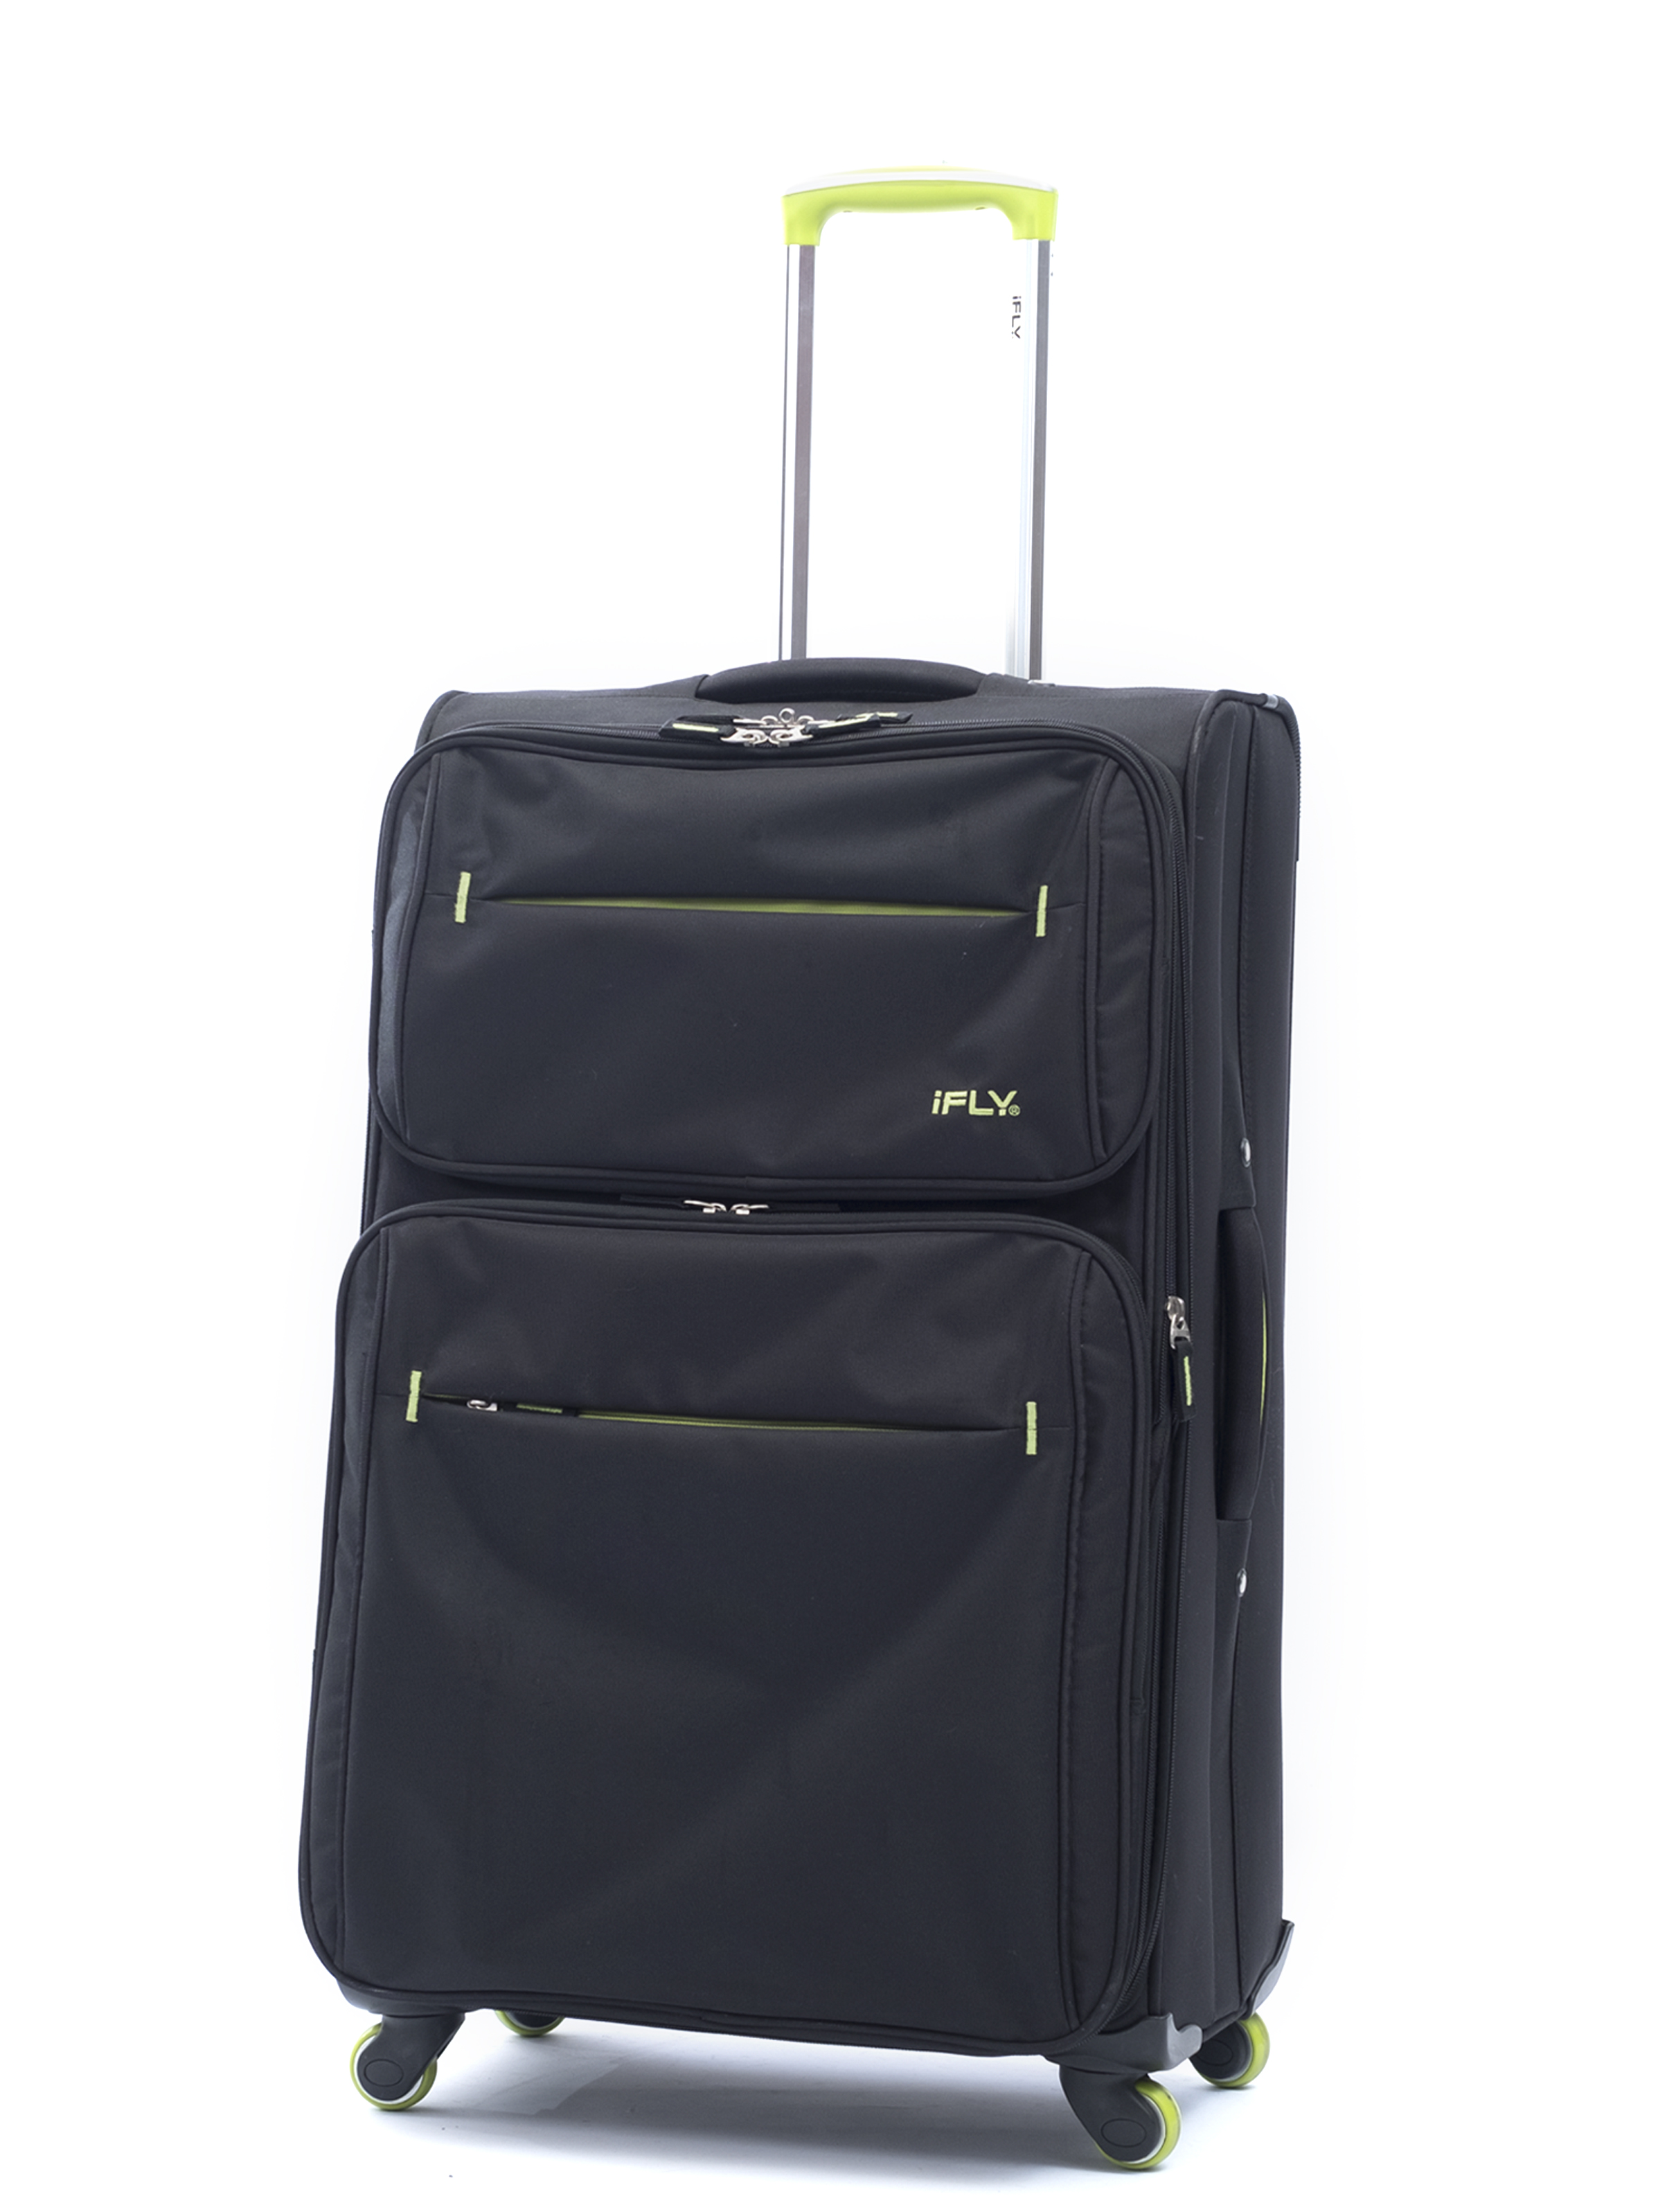 iFLY Soft Sided Luggage Accent 24, Black and Green